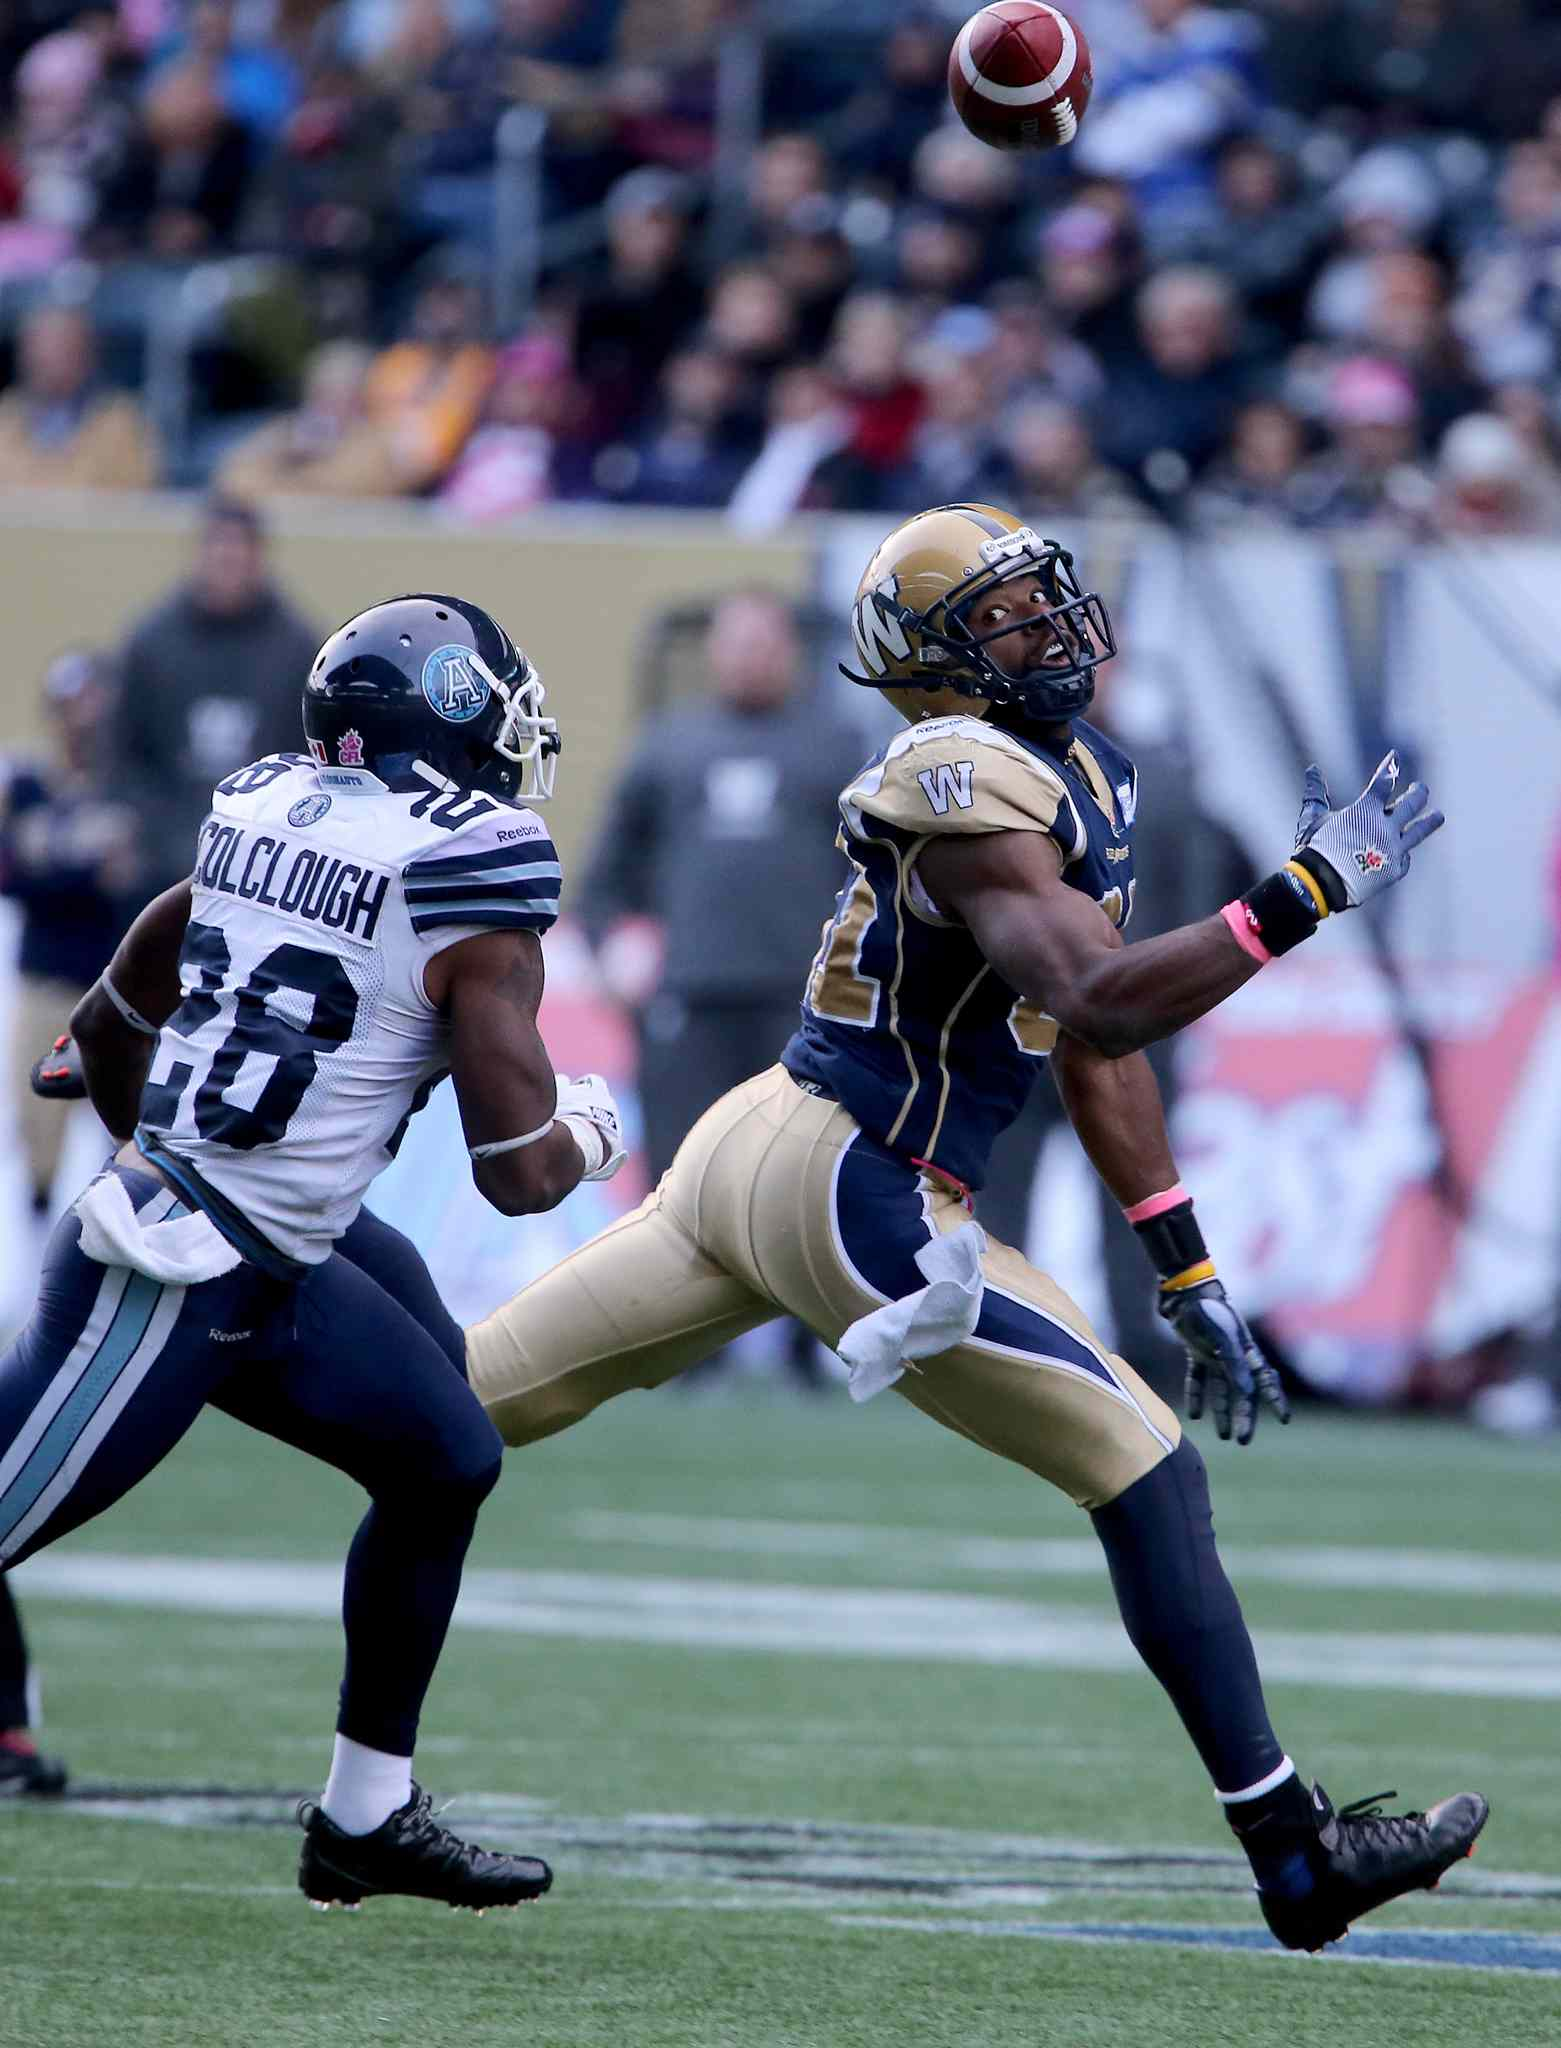 Winnipeg Blue Bombers' Cory Watson (81) has a pass go through his fingers as he's pursued by Toronto Argonauts' Ricardo Colclough (28) during the second half.